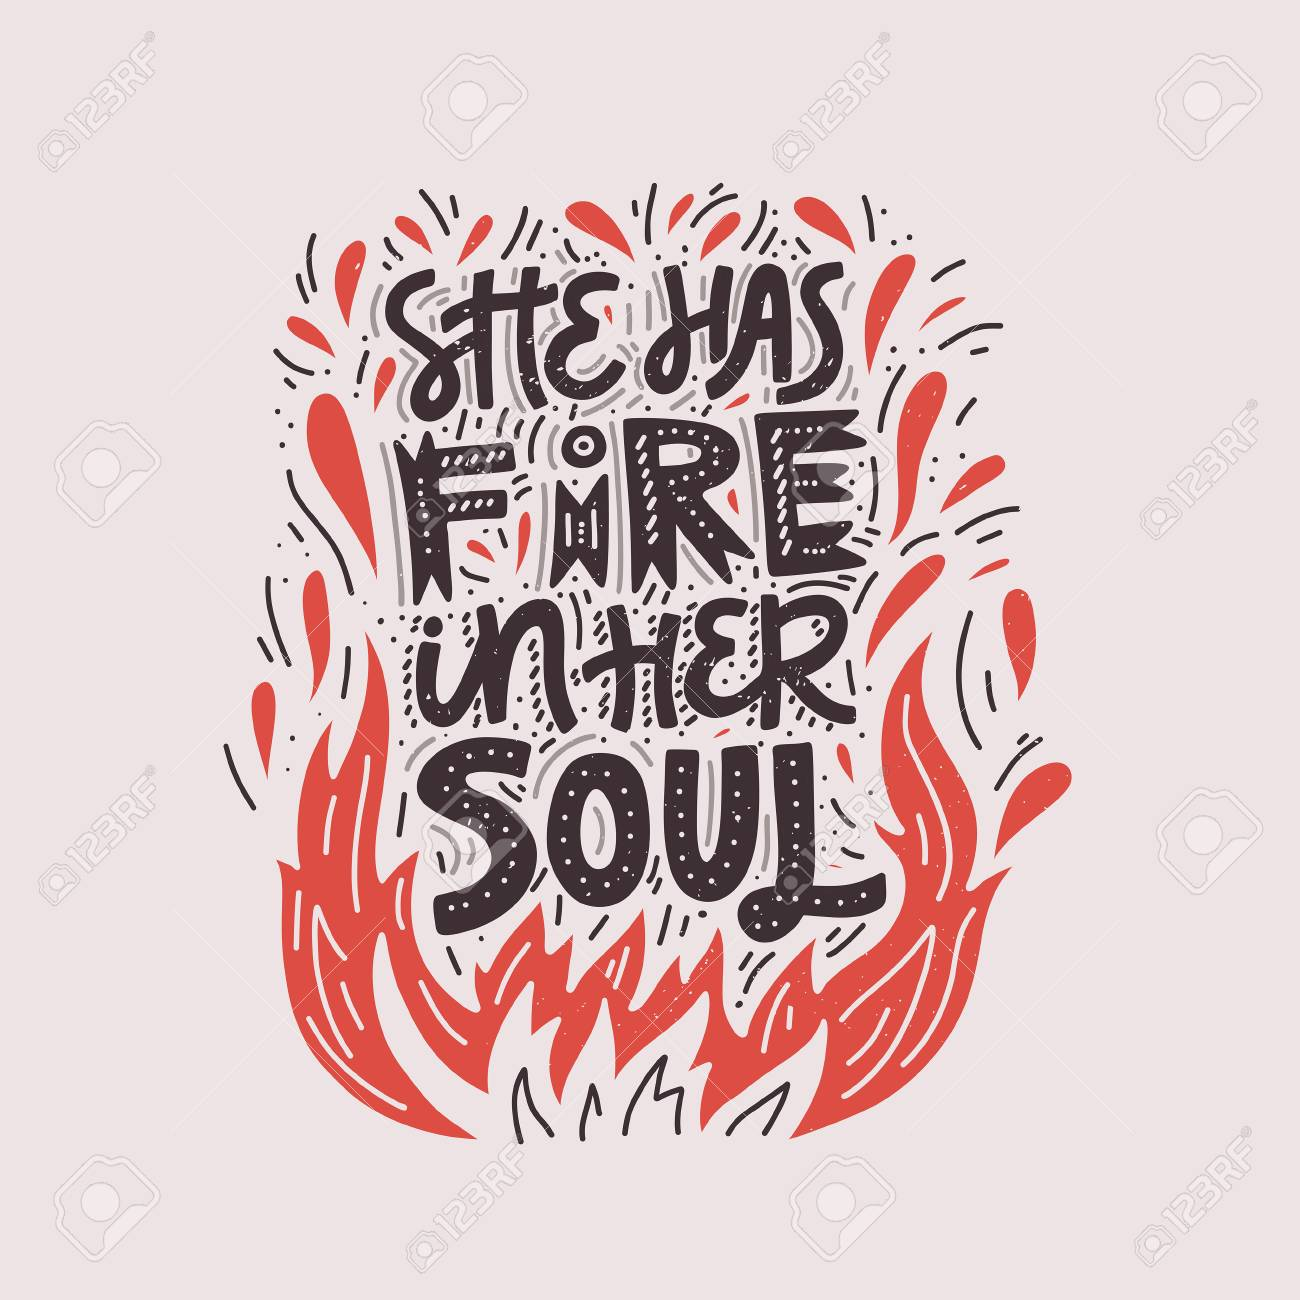 She Has Fire In Her Soul Hand Drawn Lettering Quote Phrase